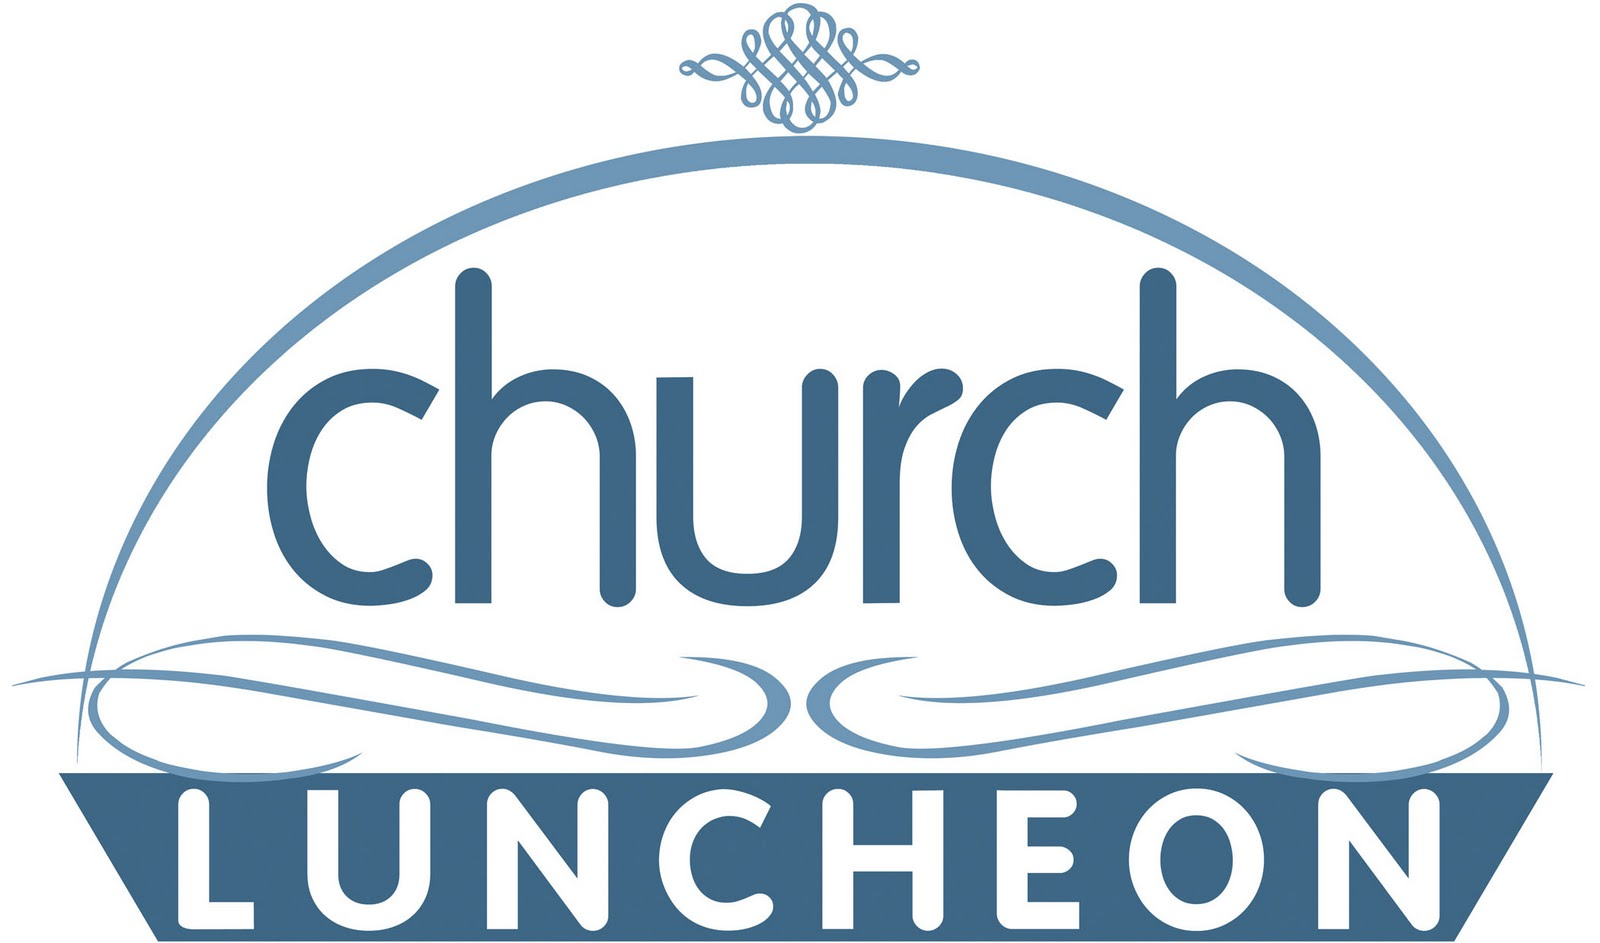 Church Luncheon Clipart.